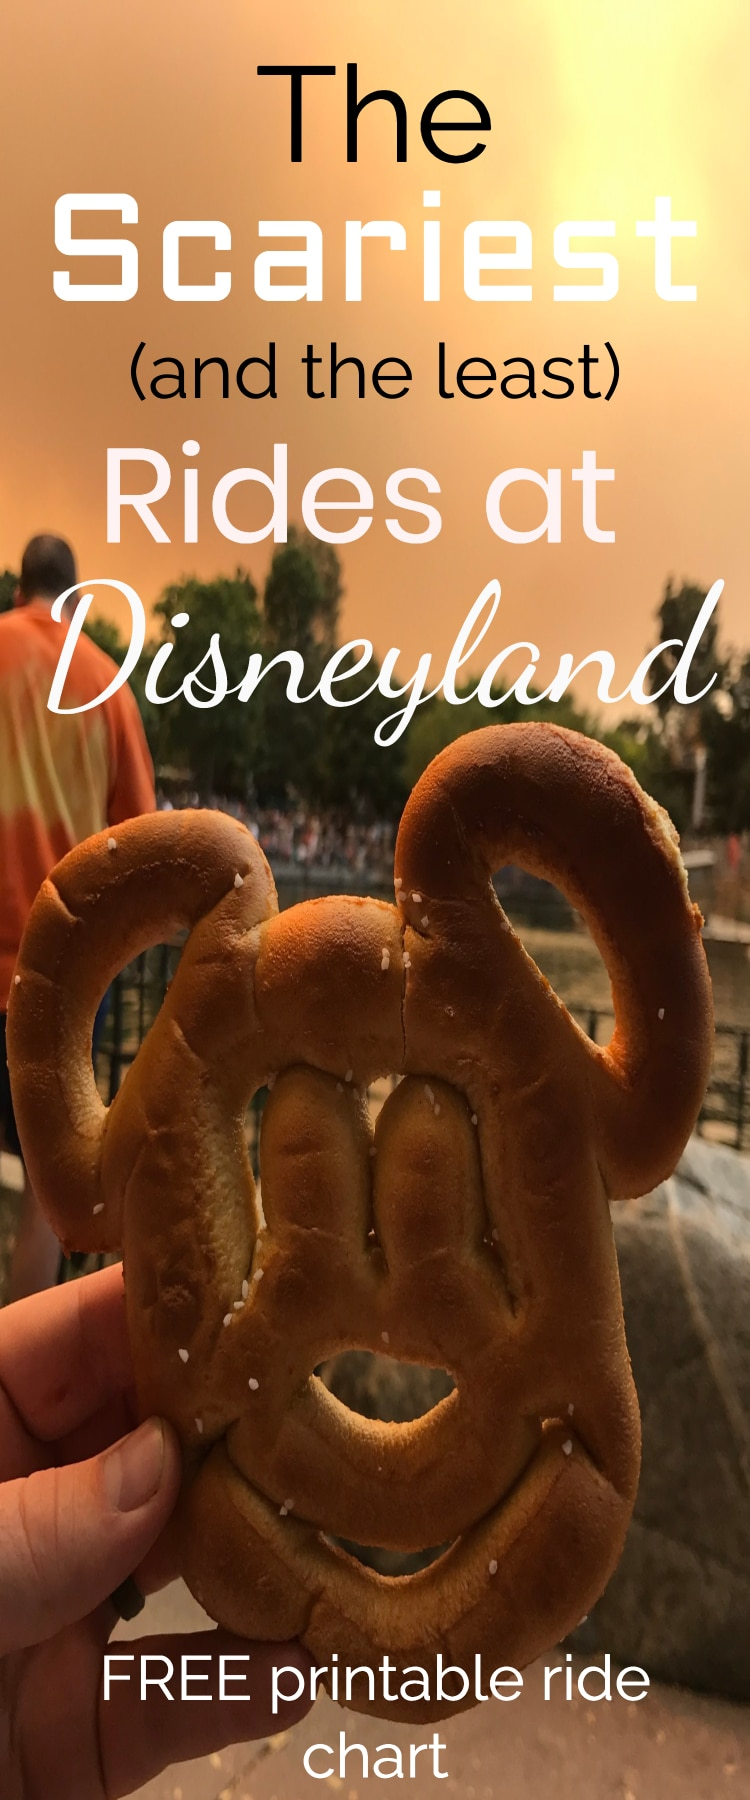 disneyland / disneyland tips / rides at disneyland / #disneyland #disneytips Disney Love / disneyland ride list / scariest rides at disneyland